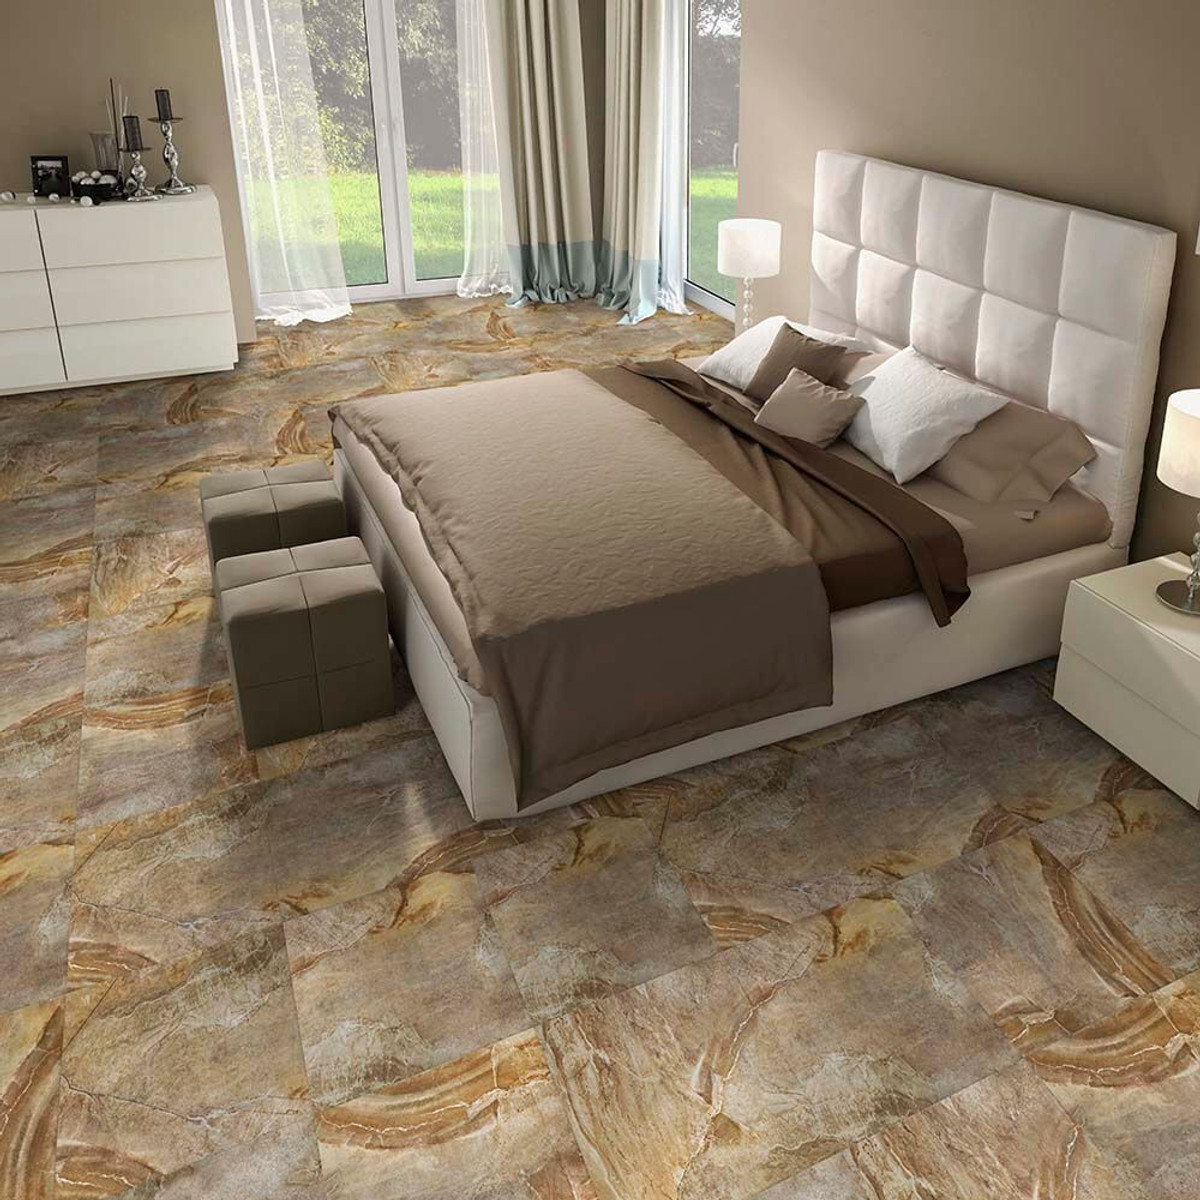 perfection gold stone tile floor htm imperial floors sandstone interlocking naturalstone natural tiles flexible